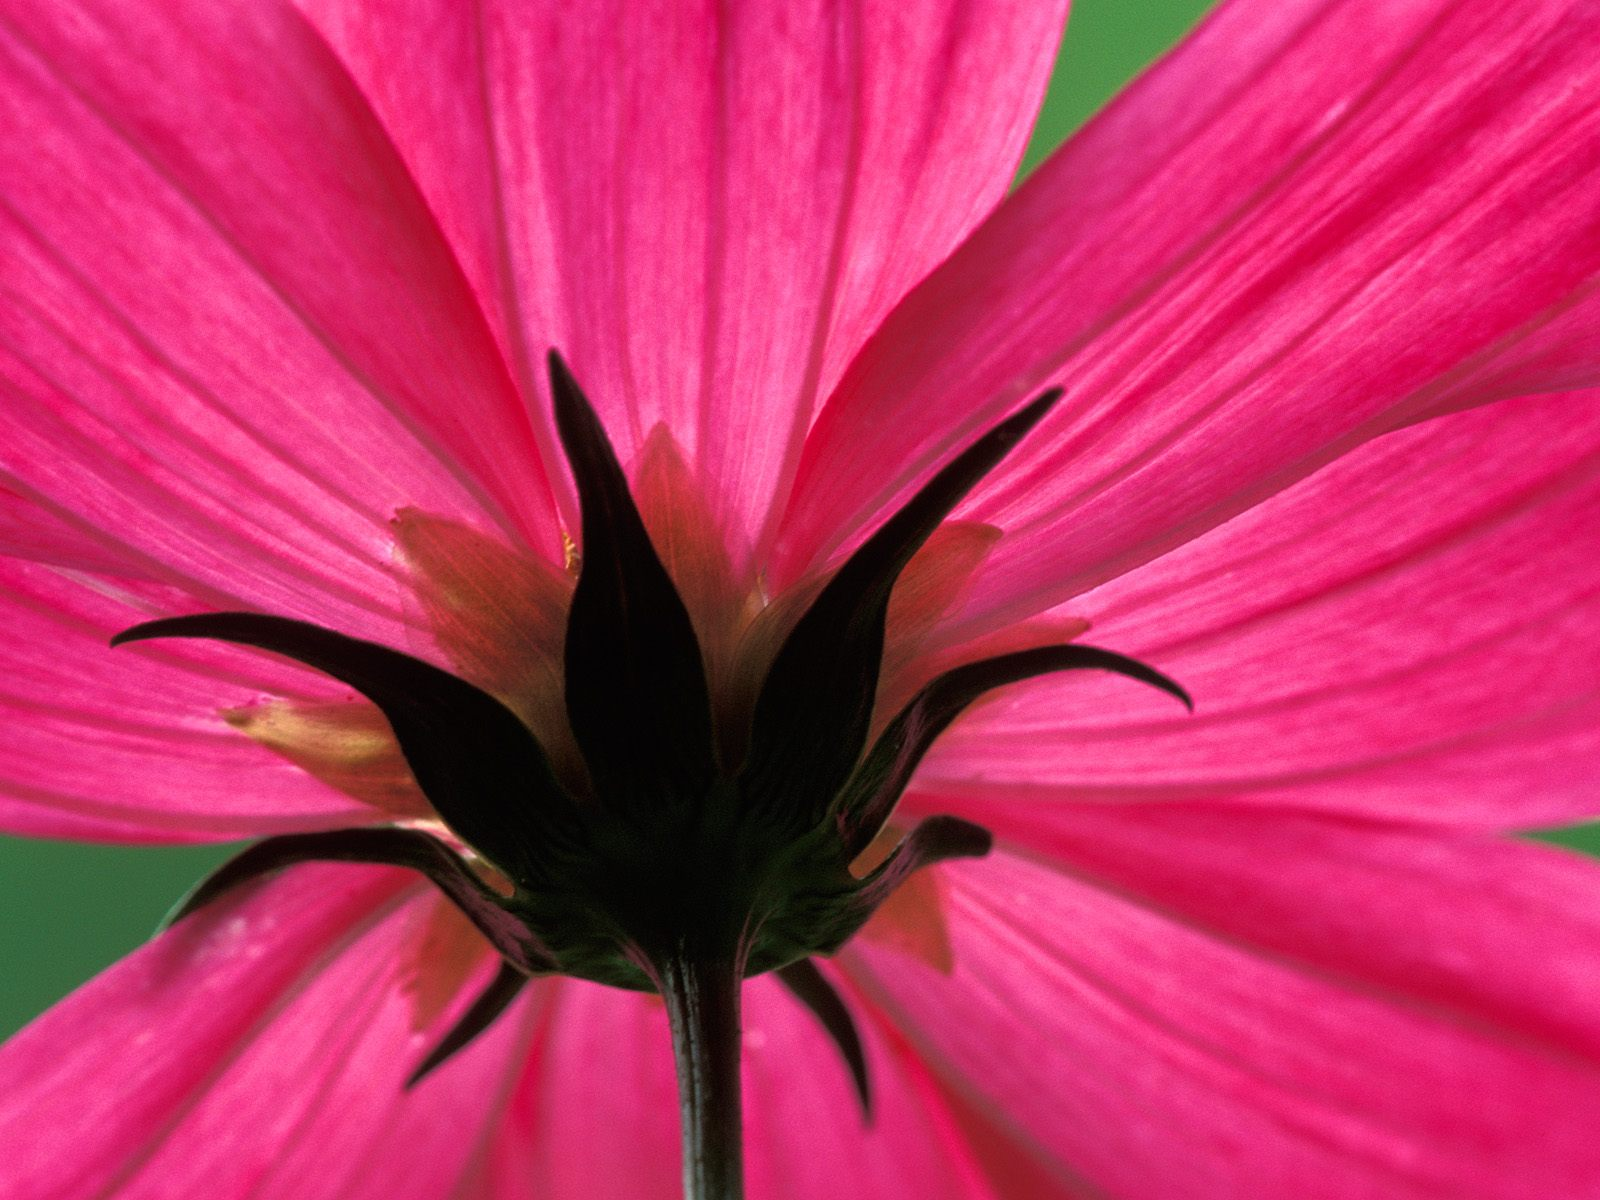 Cosmos Flower 1108.7 Kb